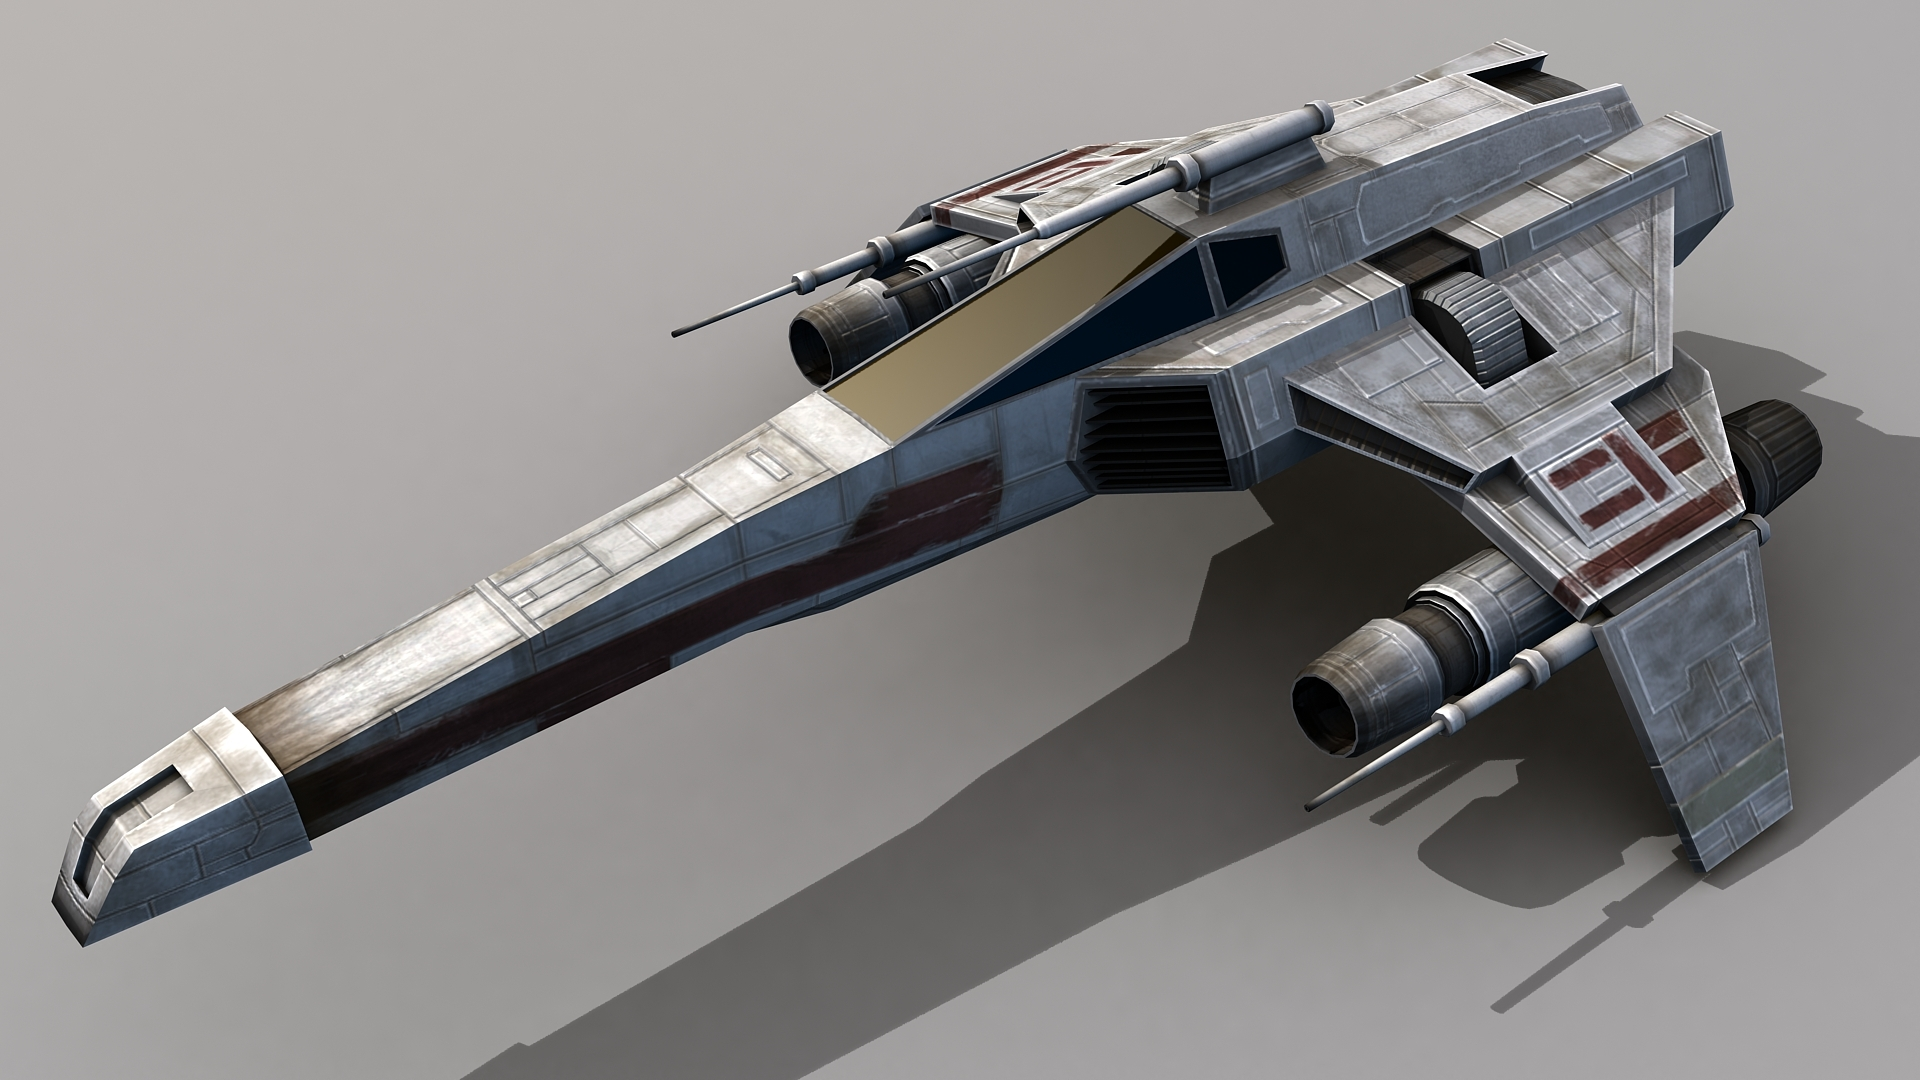 Image result for e-wing fighter